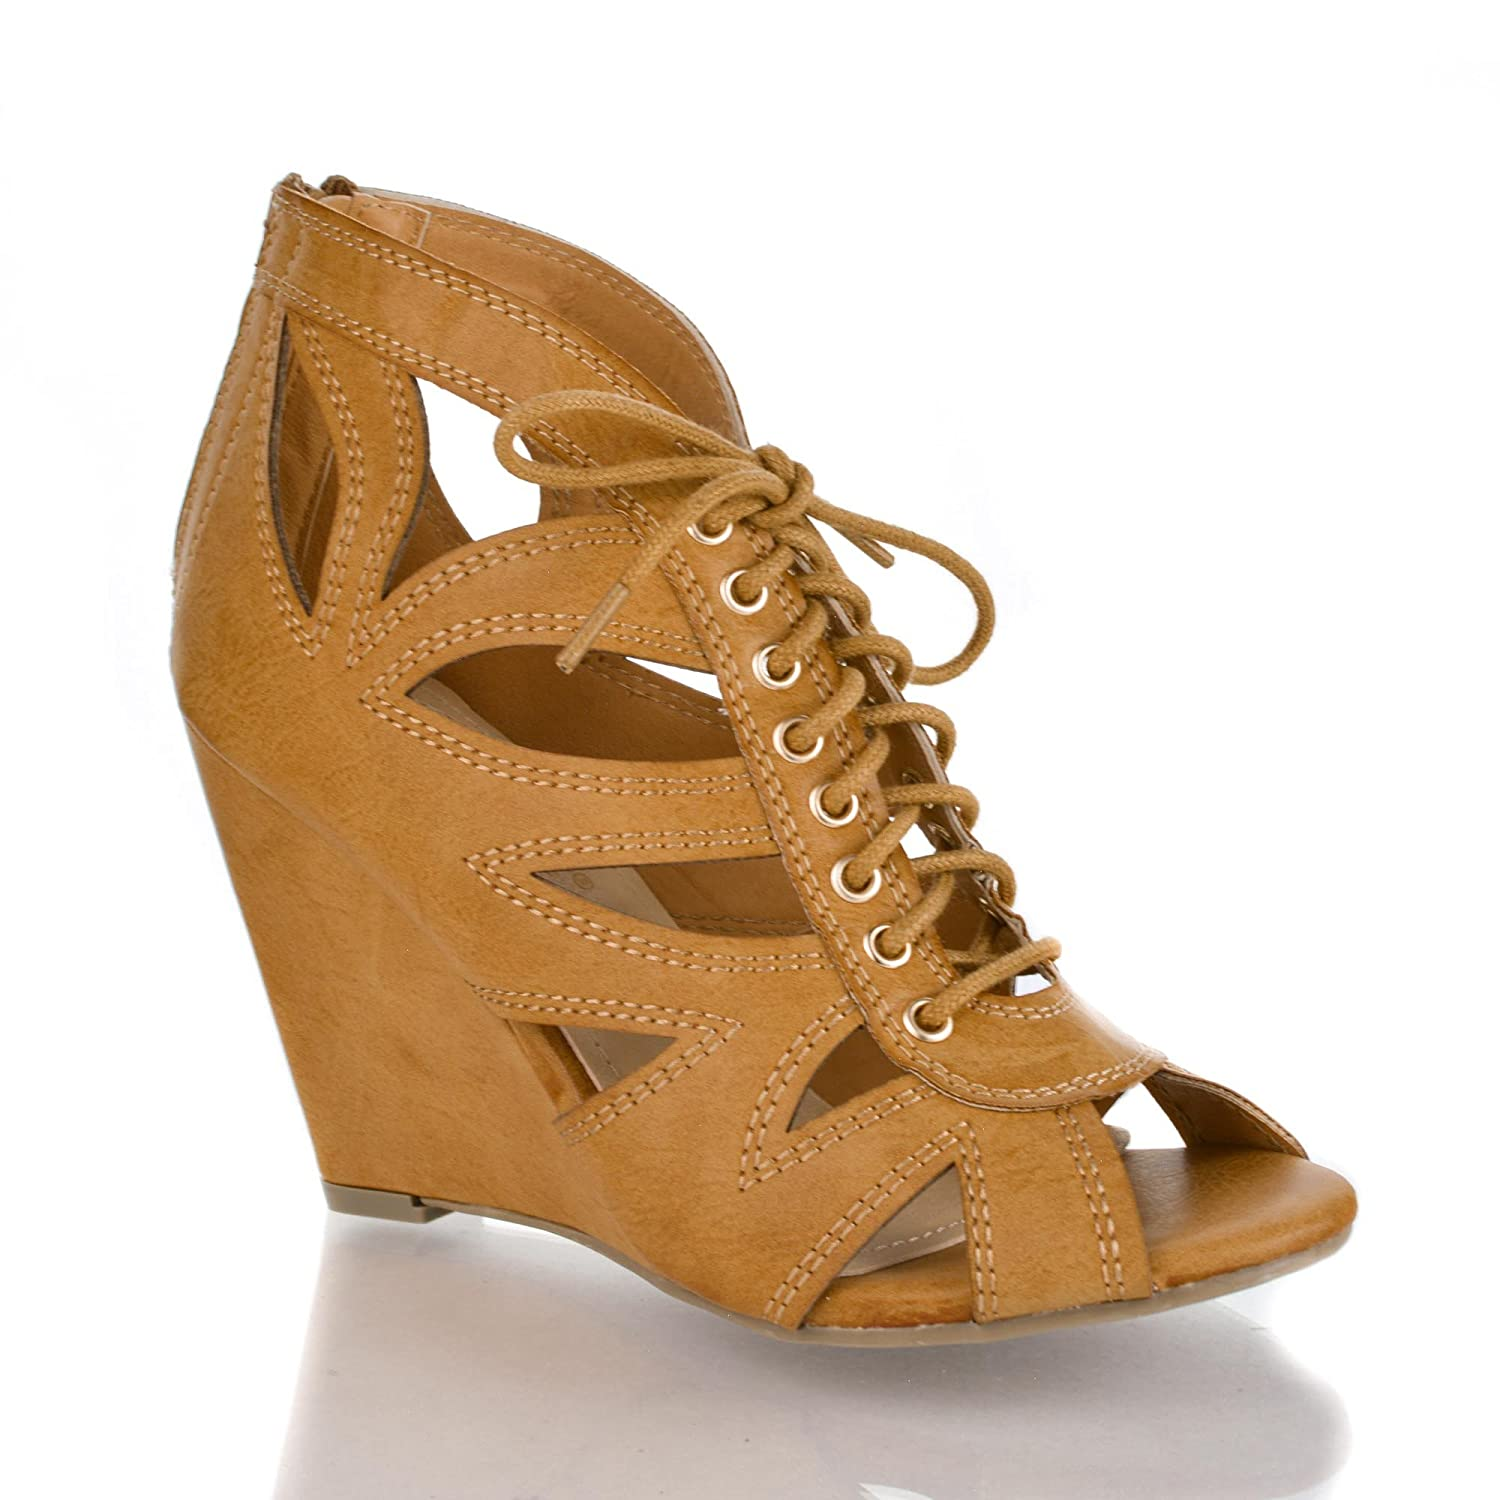 Peep Toe Laser Cut Out Grommet Lace Up Mid Wedge Heel Dress Sandal grommet lace up side tee